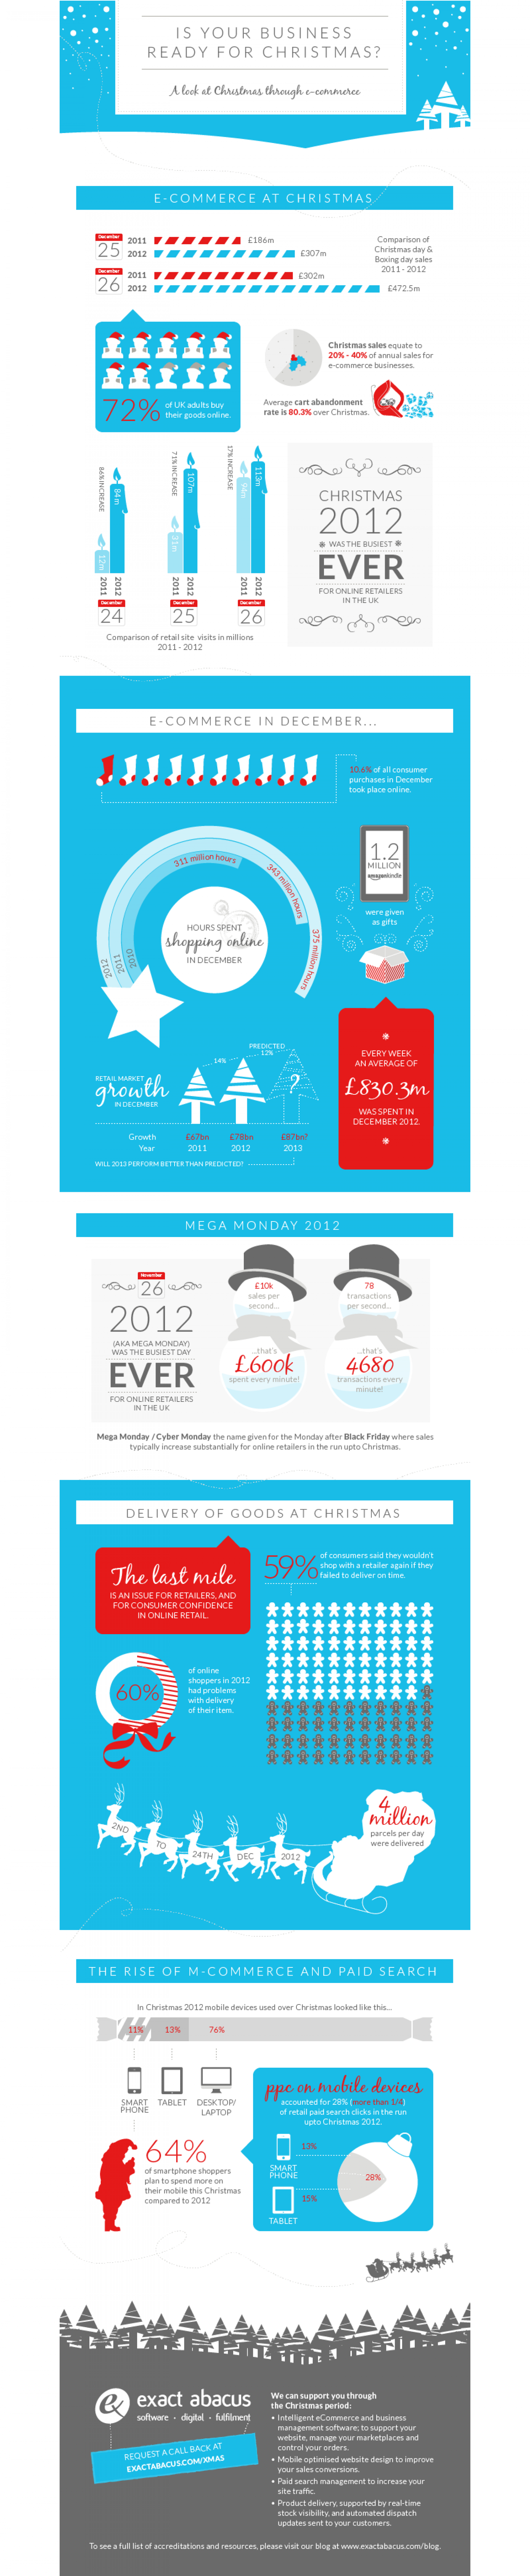 A look at Christmas through e-commerce Infographic